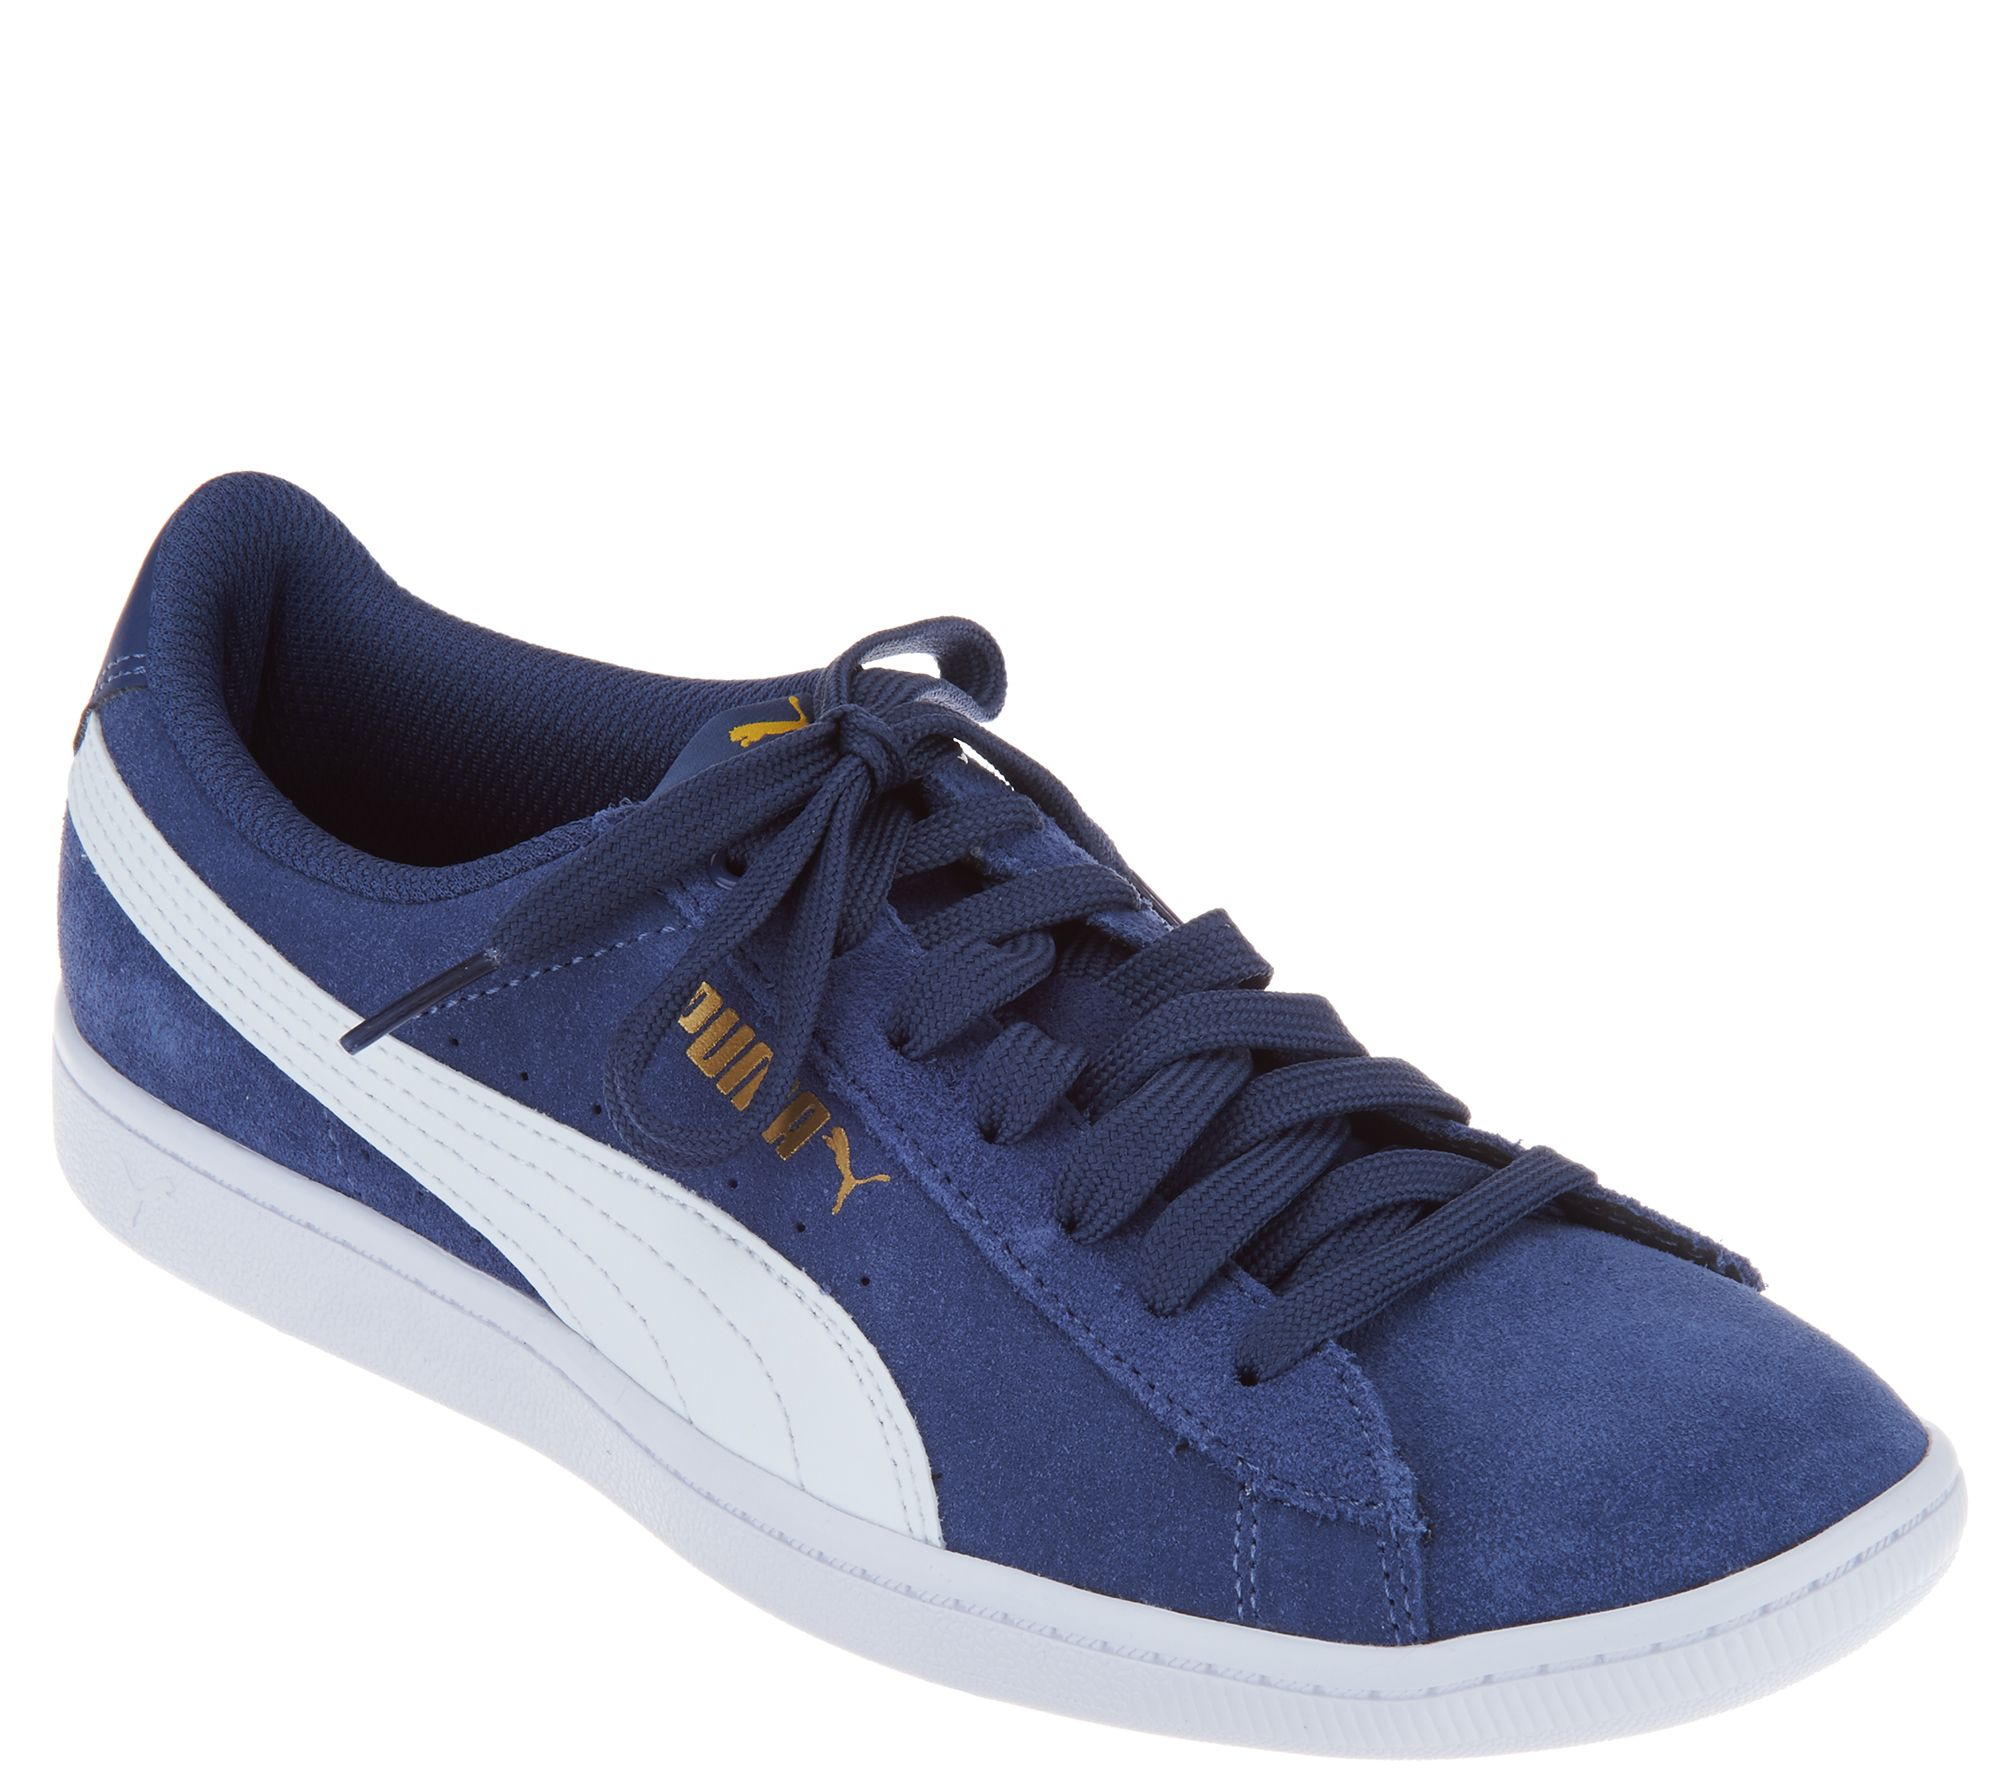 12ed66443a22 Puma Suede Lace Up Sneakers - Vikky Classic - Page 1 — QVC.com